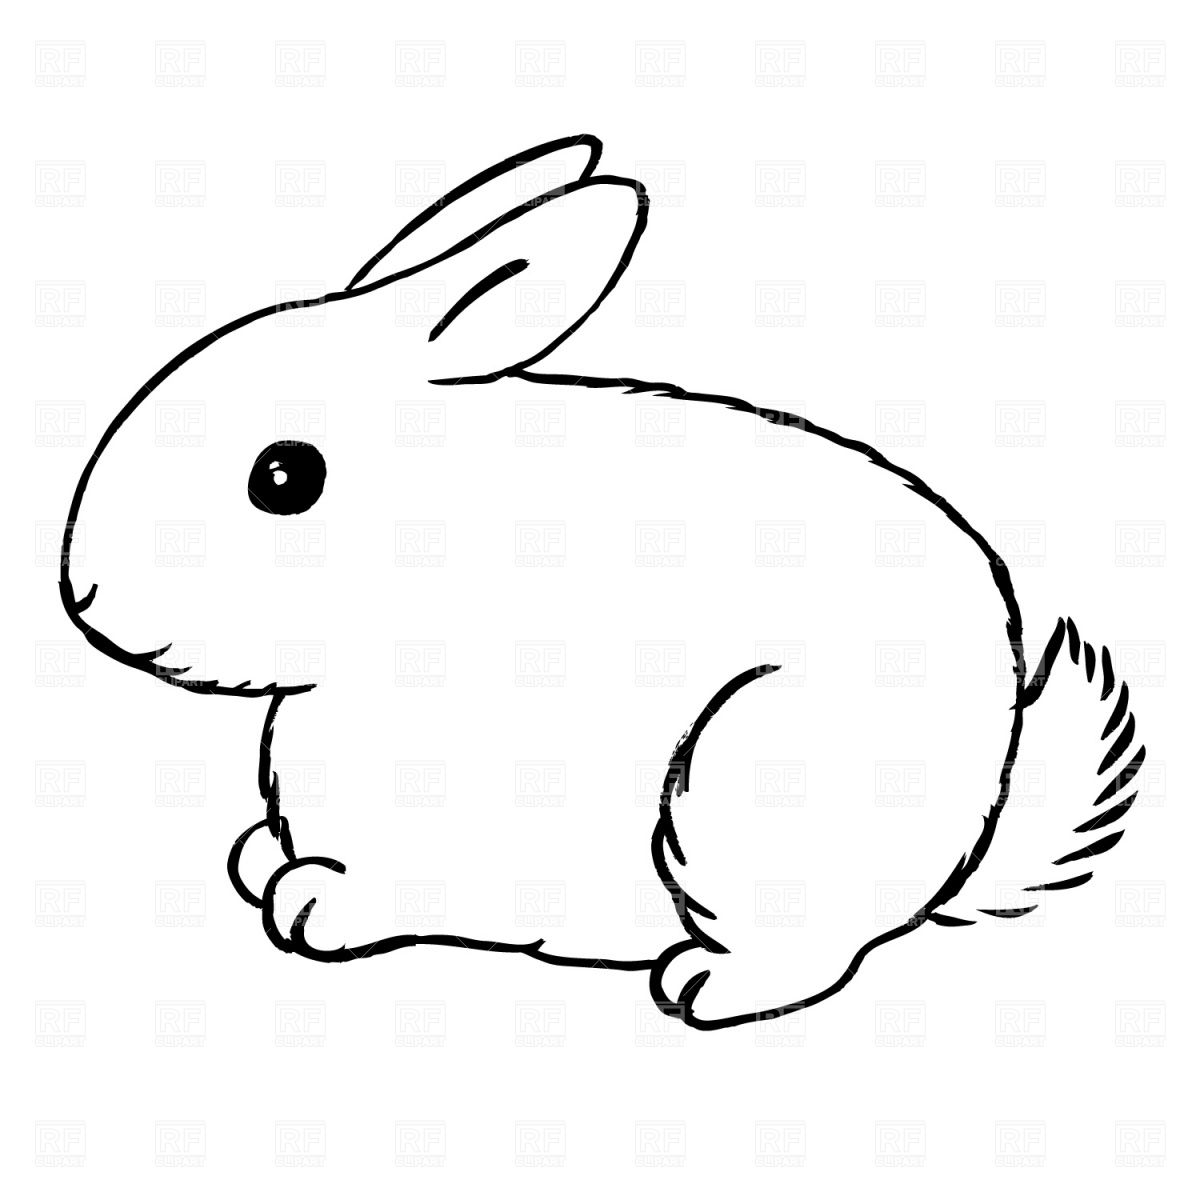 drawings of rabbits and bunnies | Use these free images for ... jpg free library